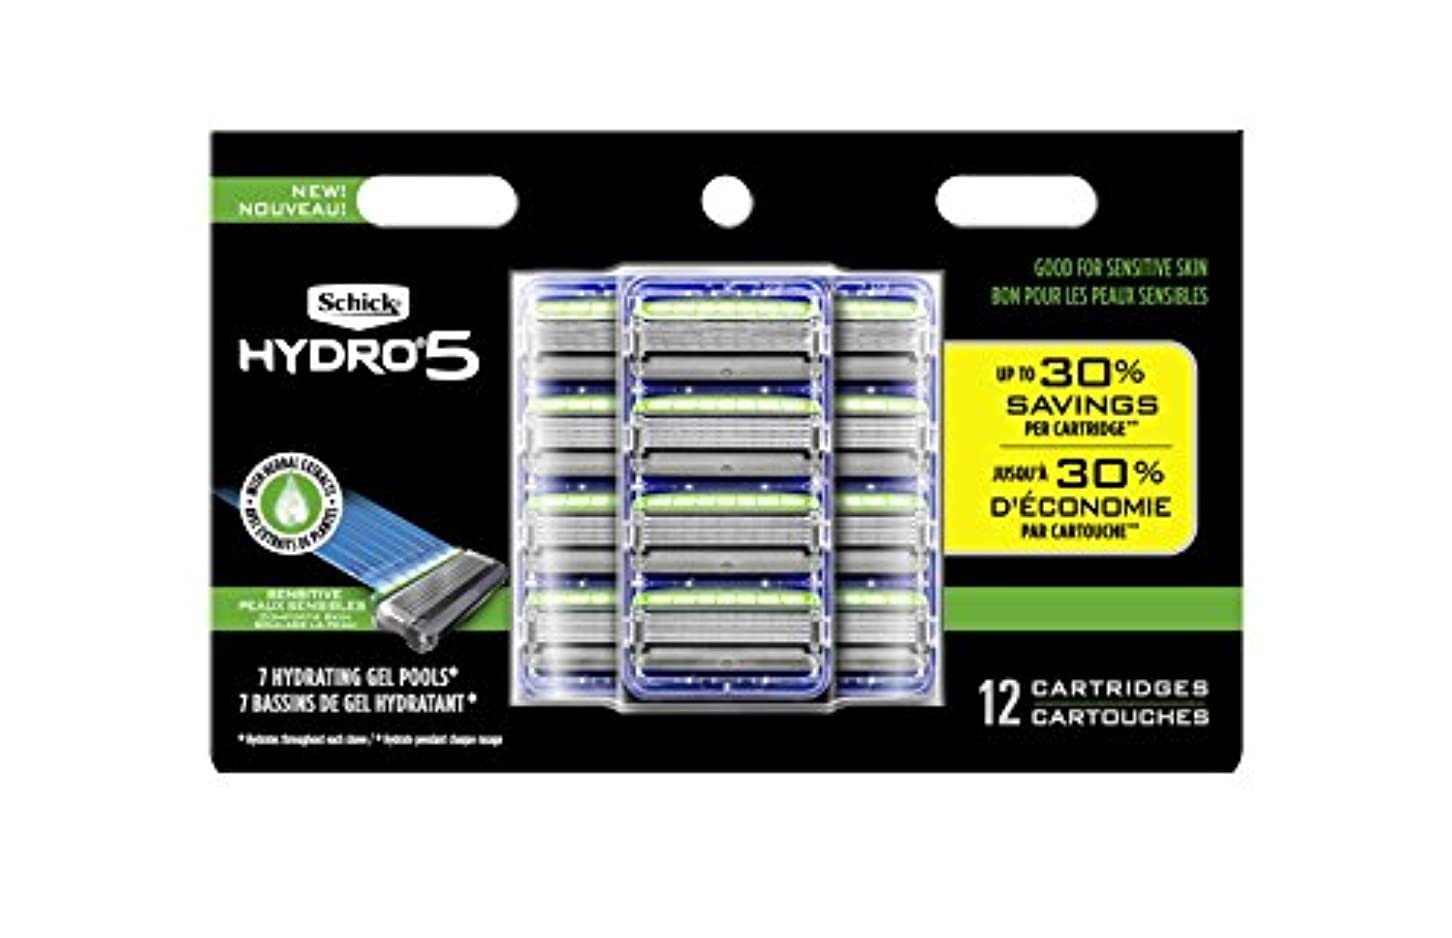 軽減発揮する火山学Schick Hydro Sense Sensitive Mens Razor Blade Refill With Skin Guards, Includes 12 Razor Blades Refills 141[並行輸入]